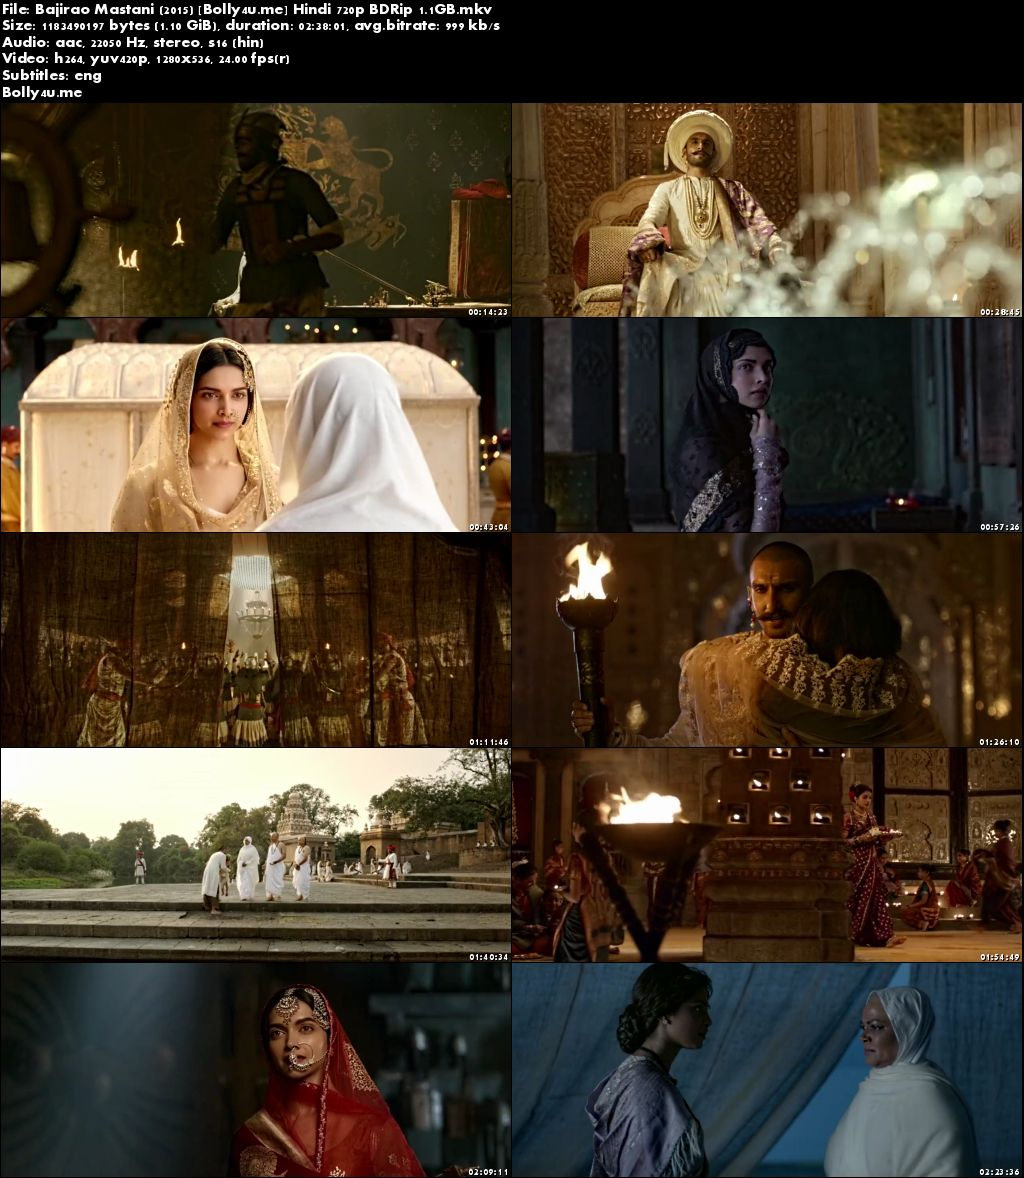 Bajirao Mastani 2015 BDRip Full Hindi Movie Download 720p